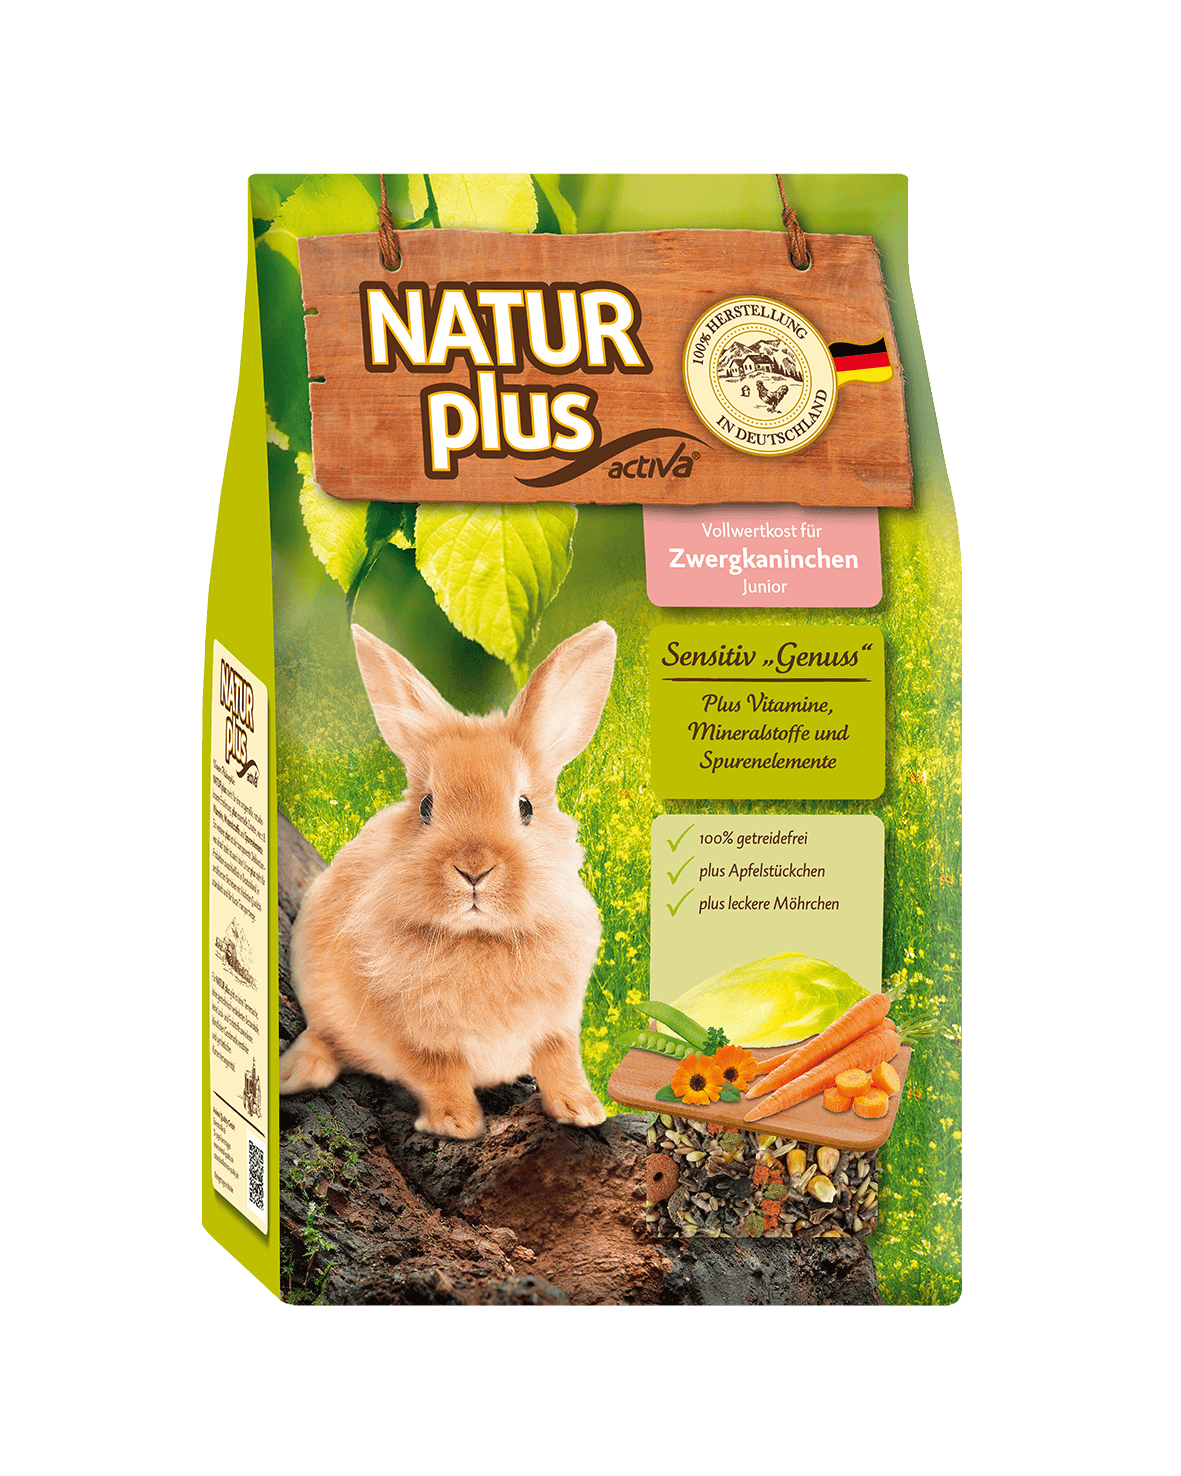 Natur plus ZK Junior Sensitiv Genuss